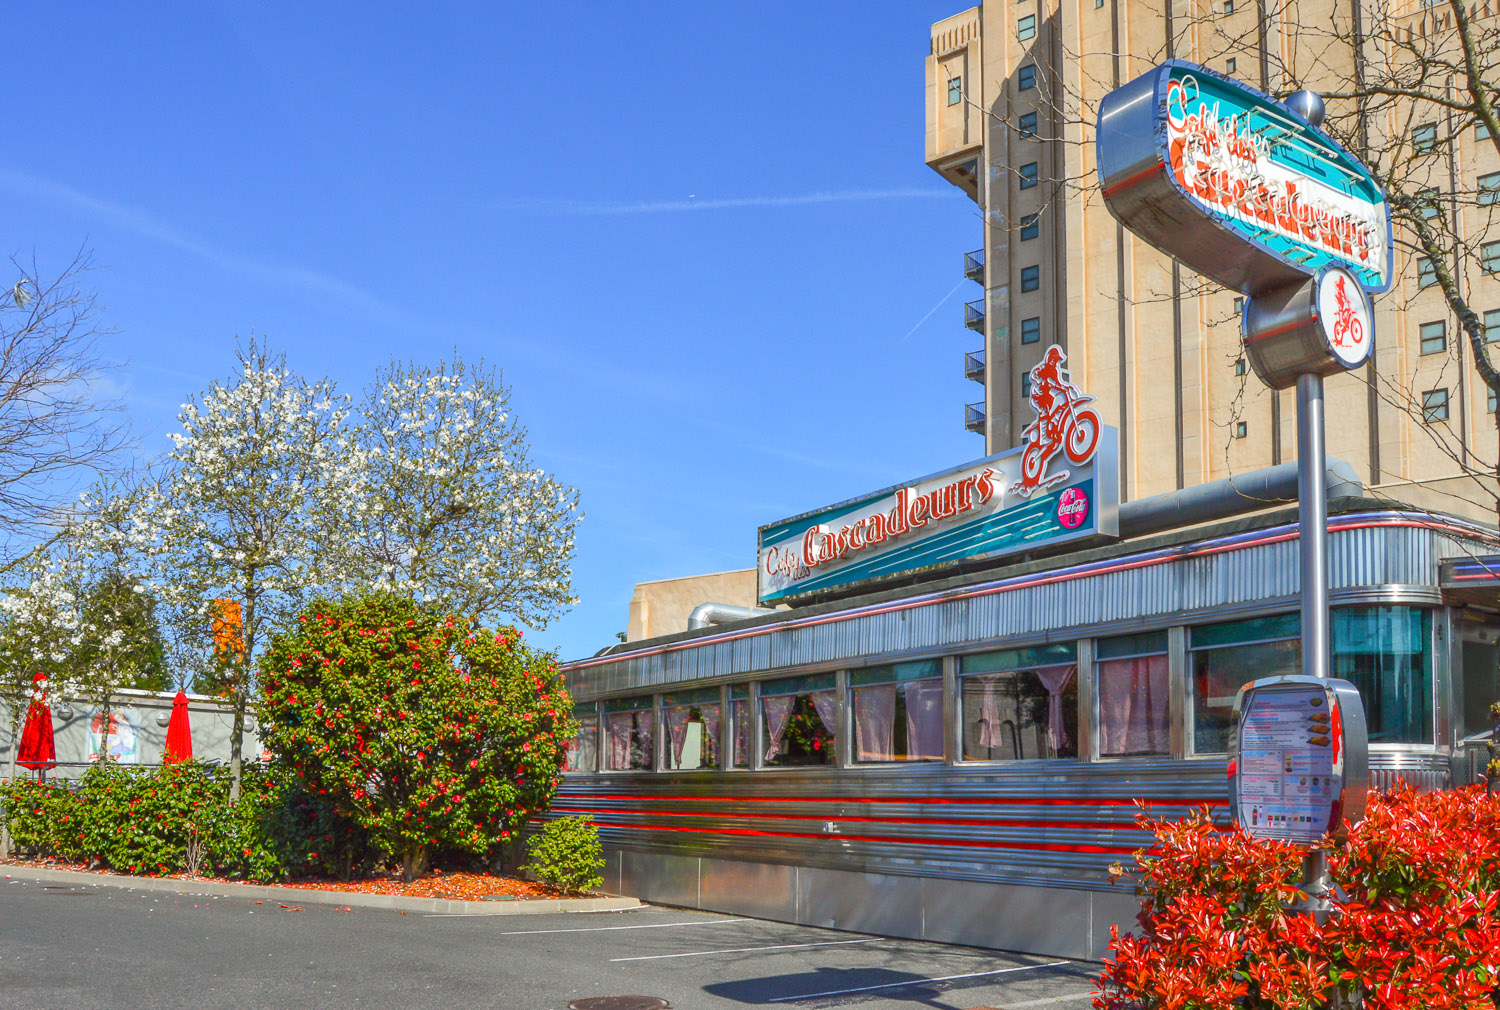 Cafe des cascadeurs an american diner in disneyland paris for 50 s diner exterior